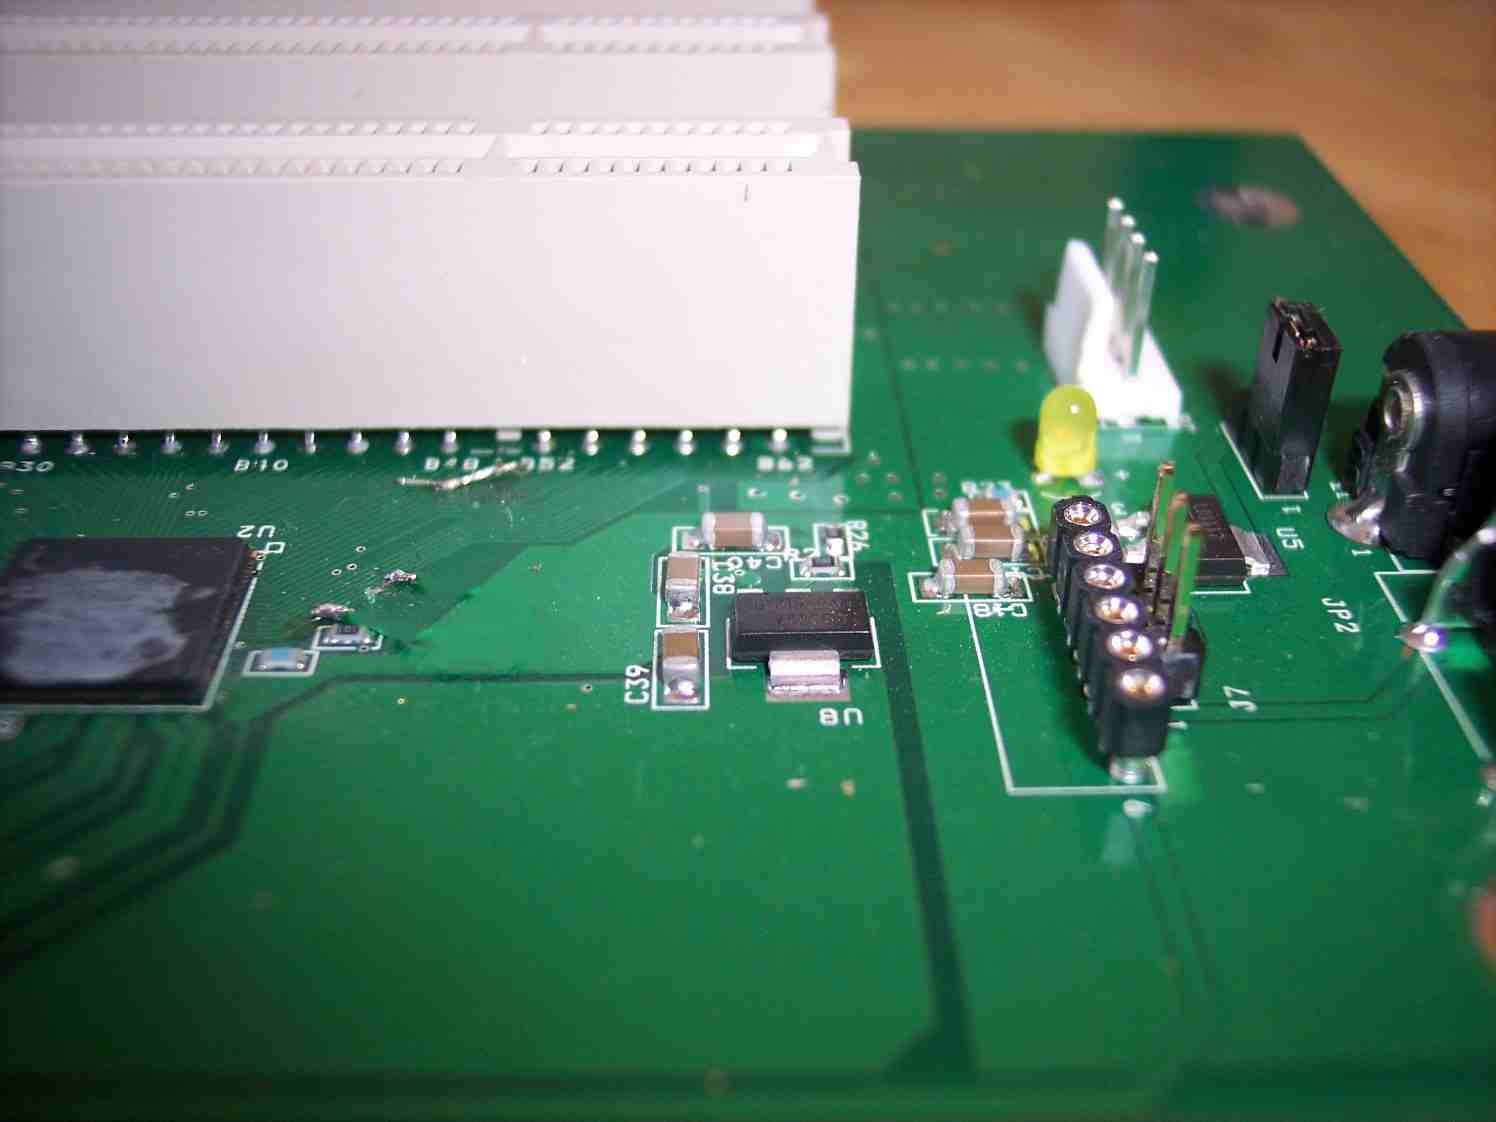 connecting cables to xprs-pci-x3 - right